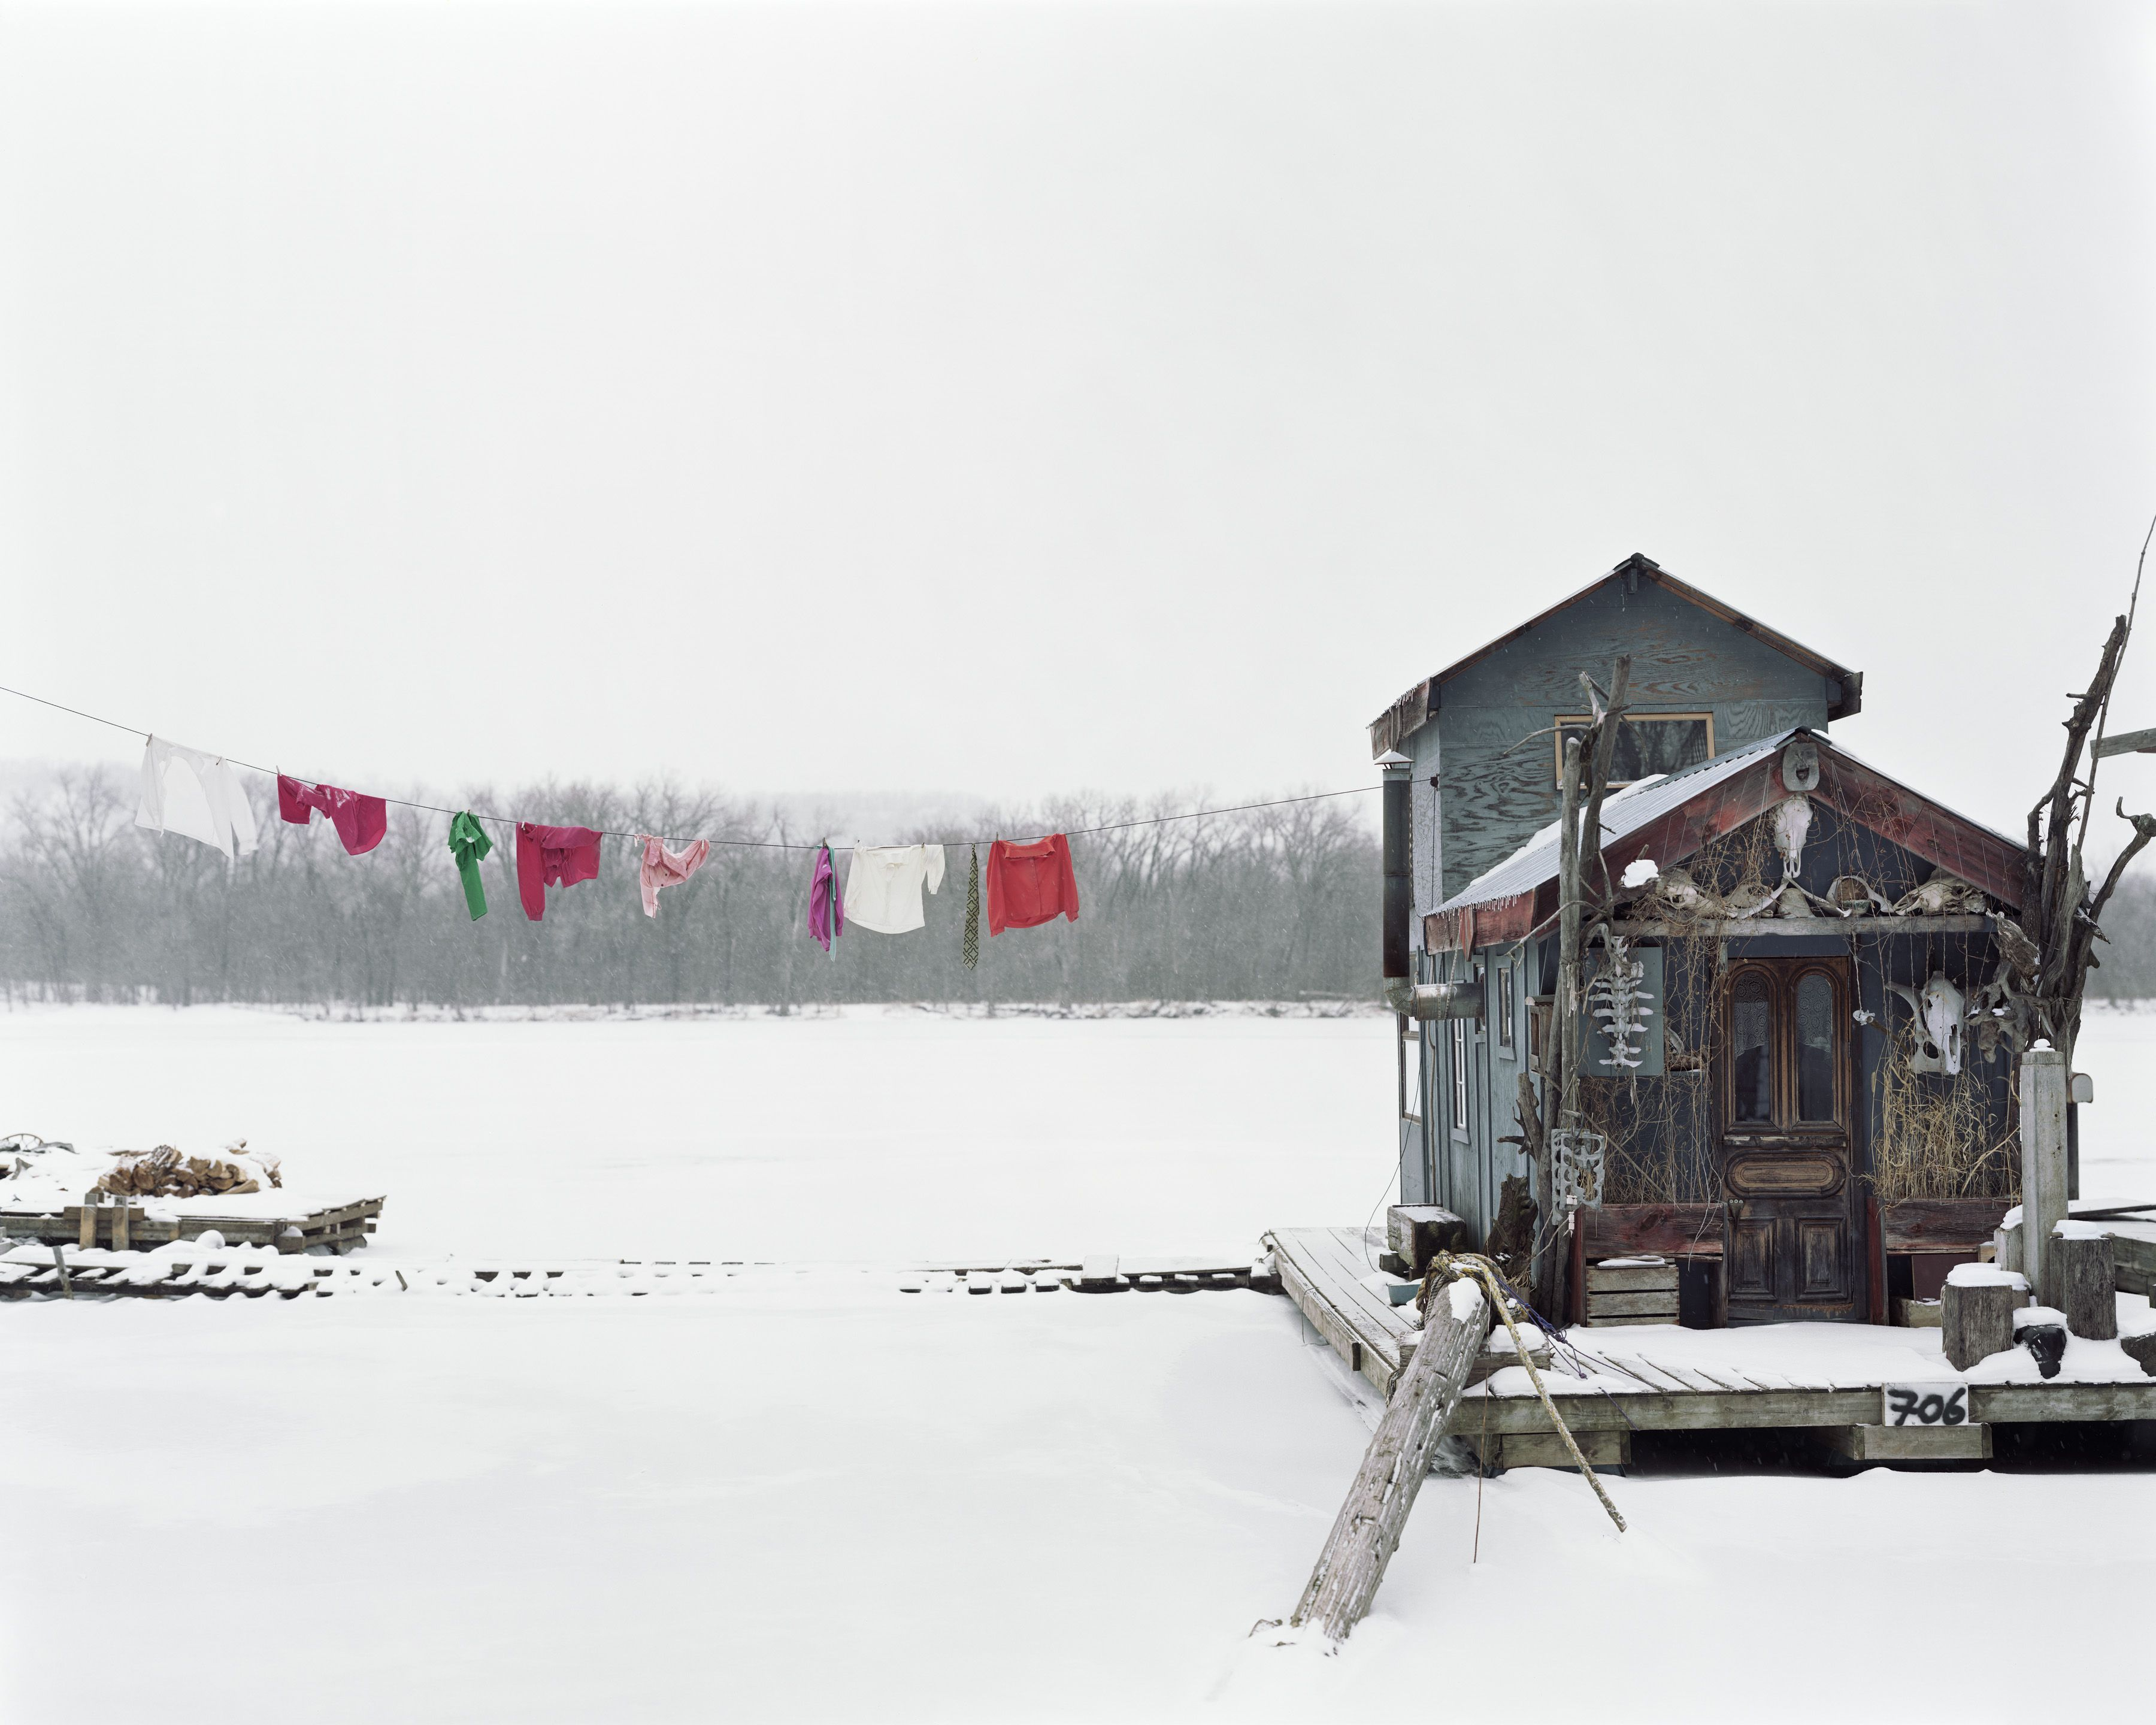 Alec Soth, 'Peter's Houseboat, Winona, MN', 2002. Image courtesy of Beetles + Huxley and Sean Kelly Gallery. © Alec Soth.